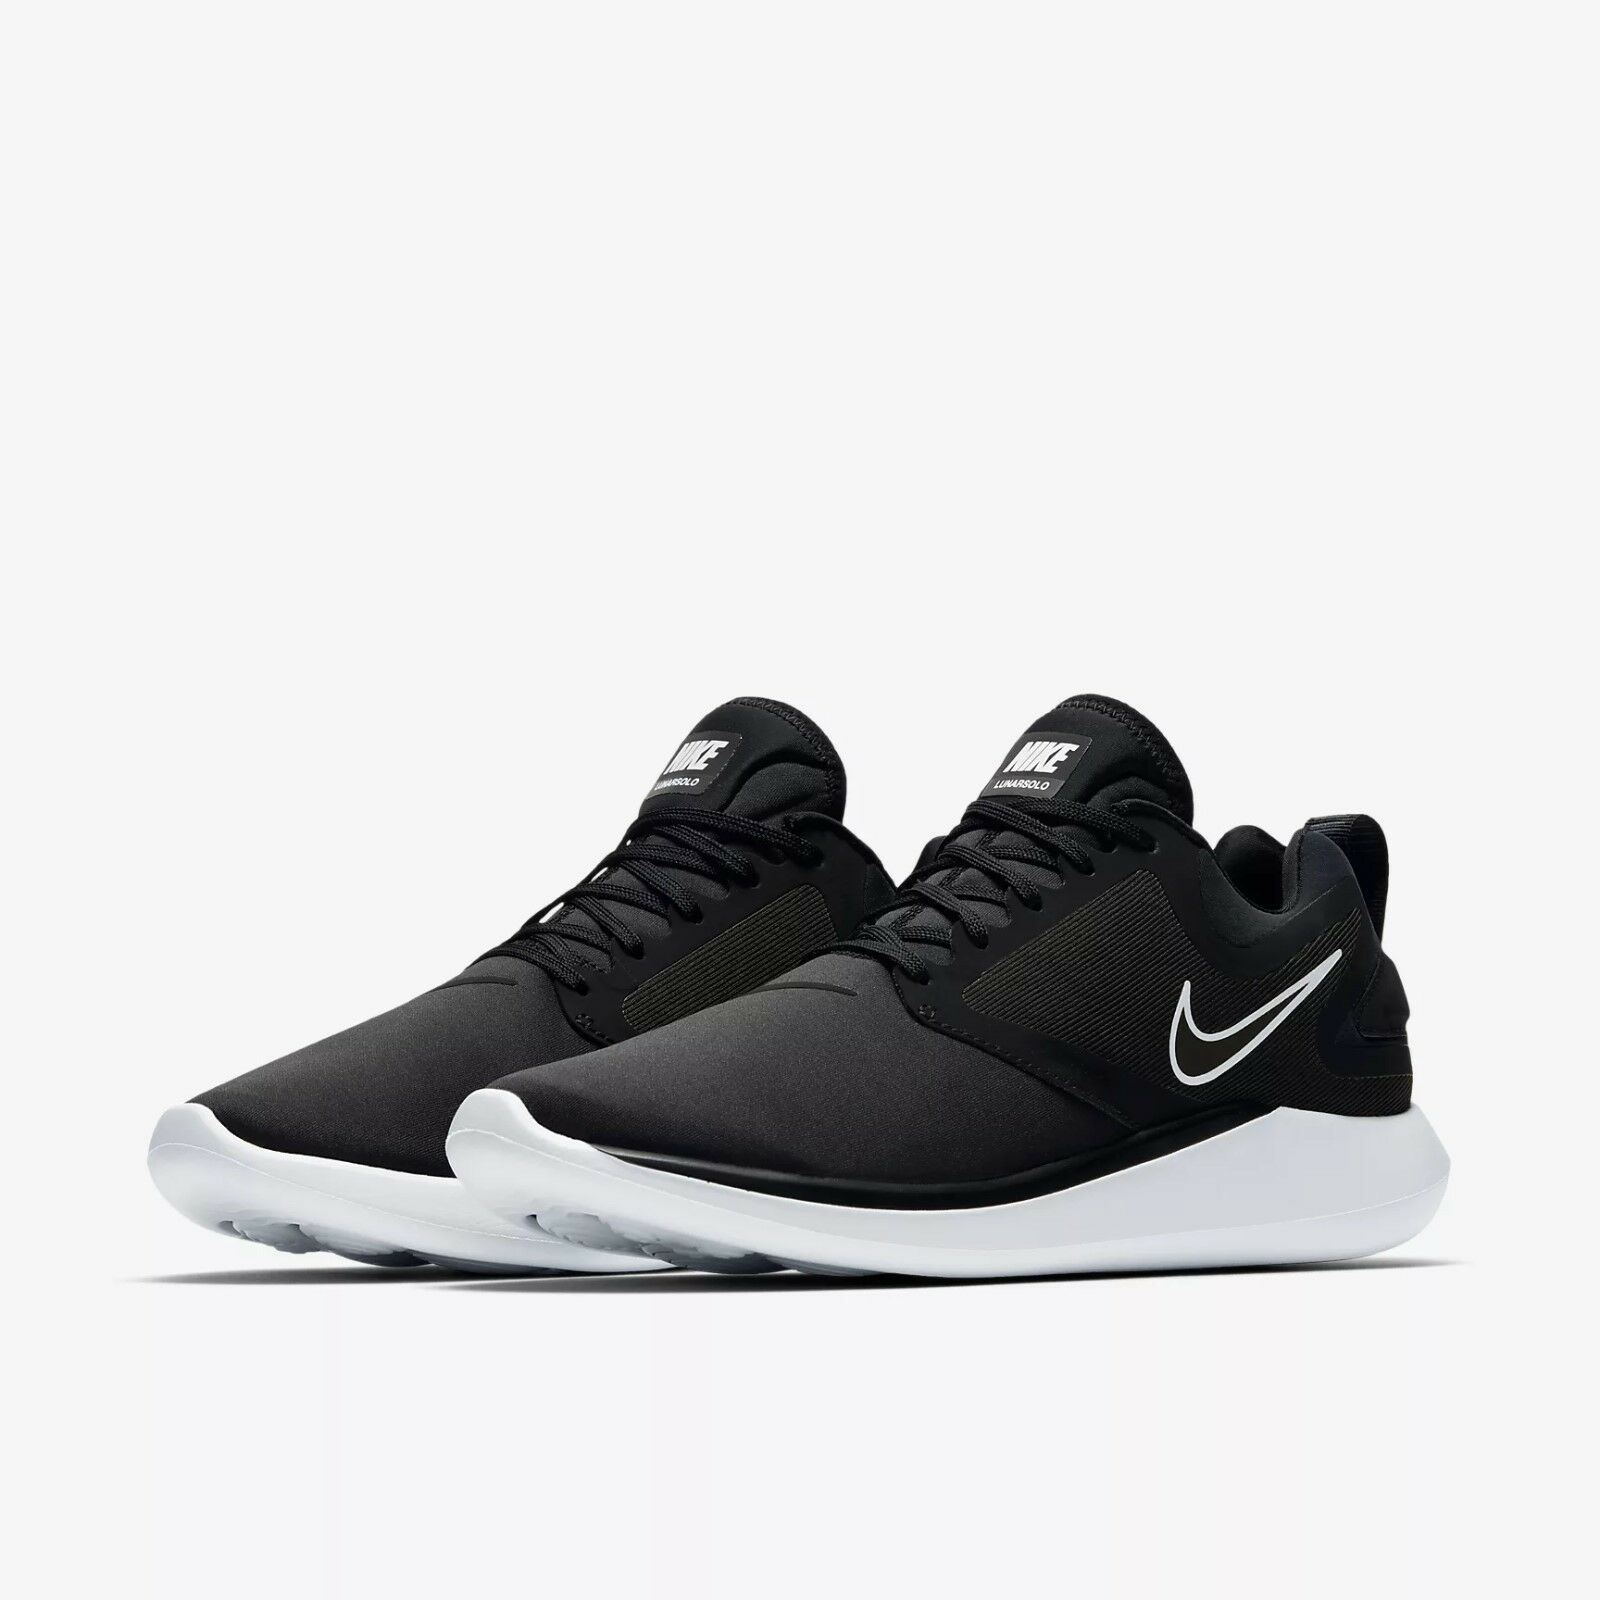 Men's Nike Lunarsolo Running Shoes Black/White NIB 8-New In Box AA4079-001